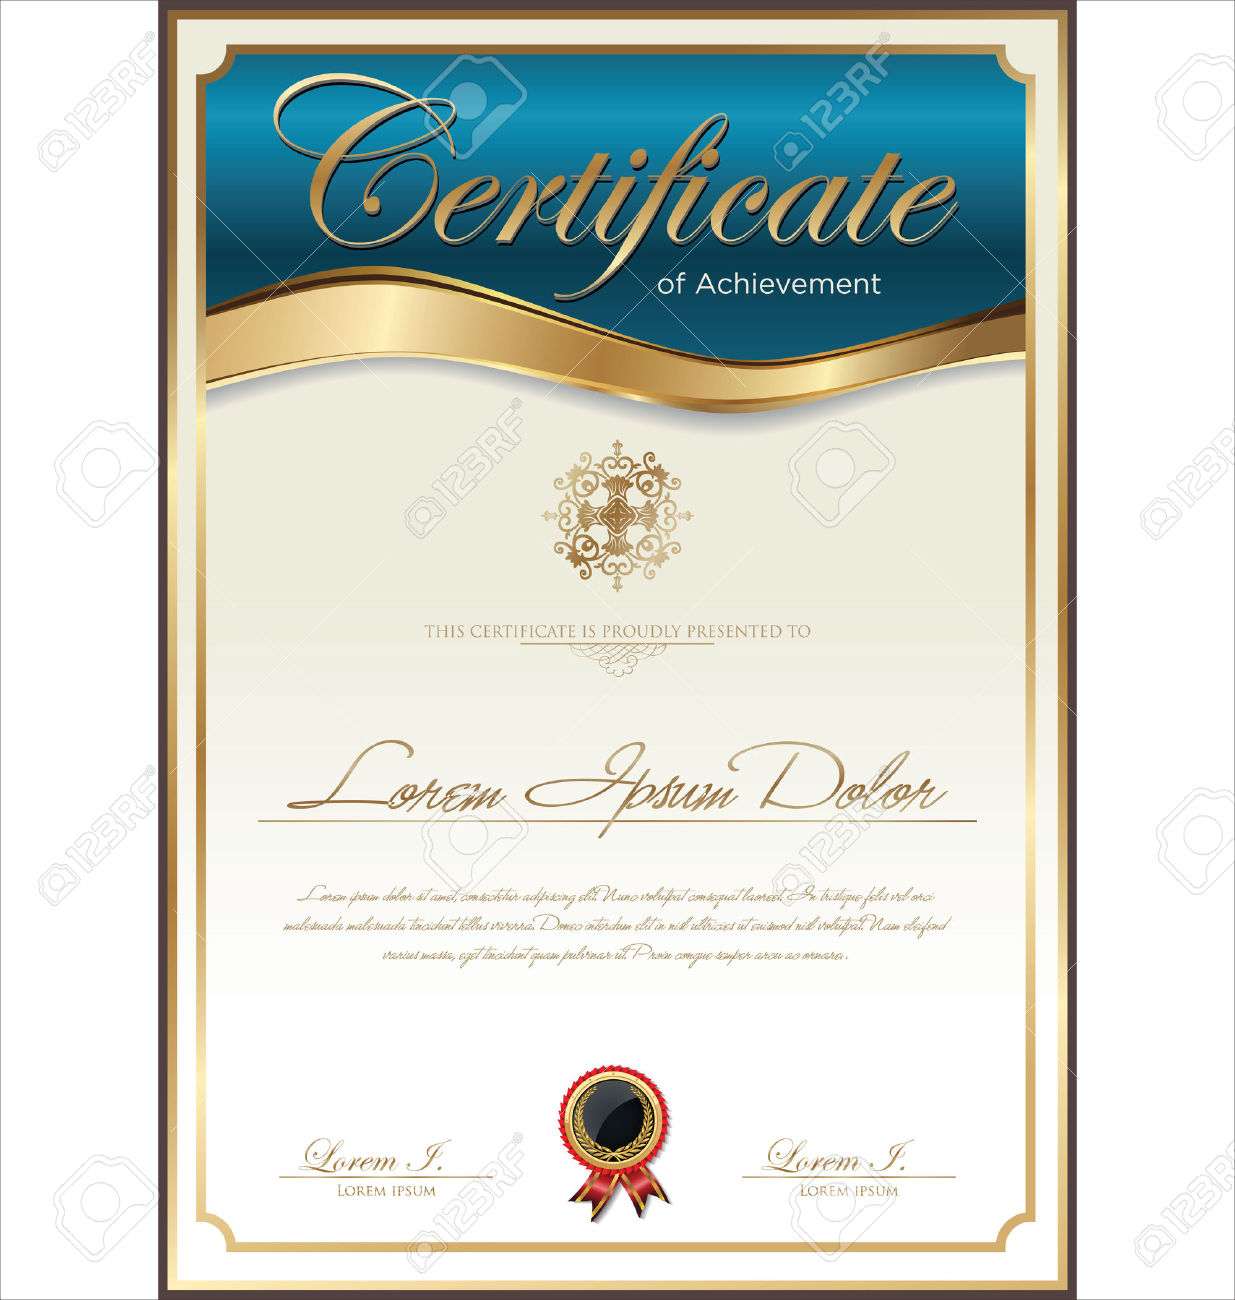 Certificate templates rich image and wallpaper for Free printable certificate templates